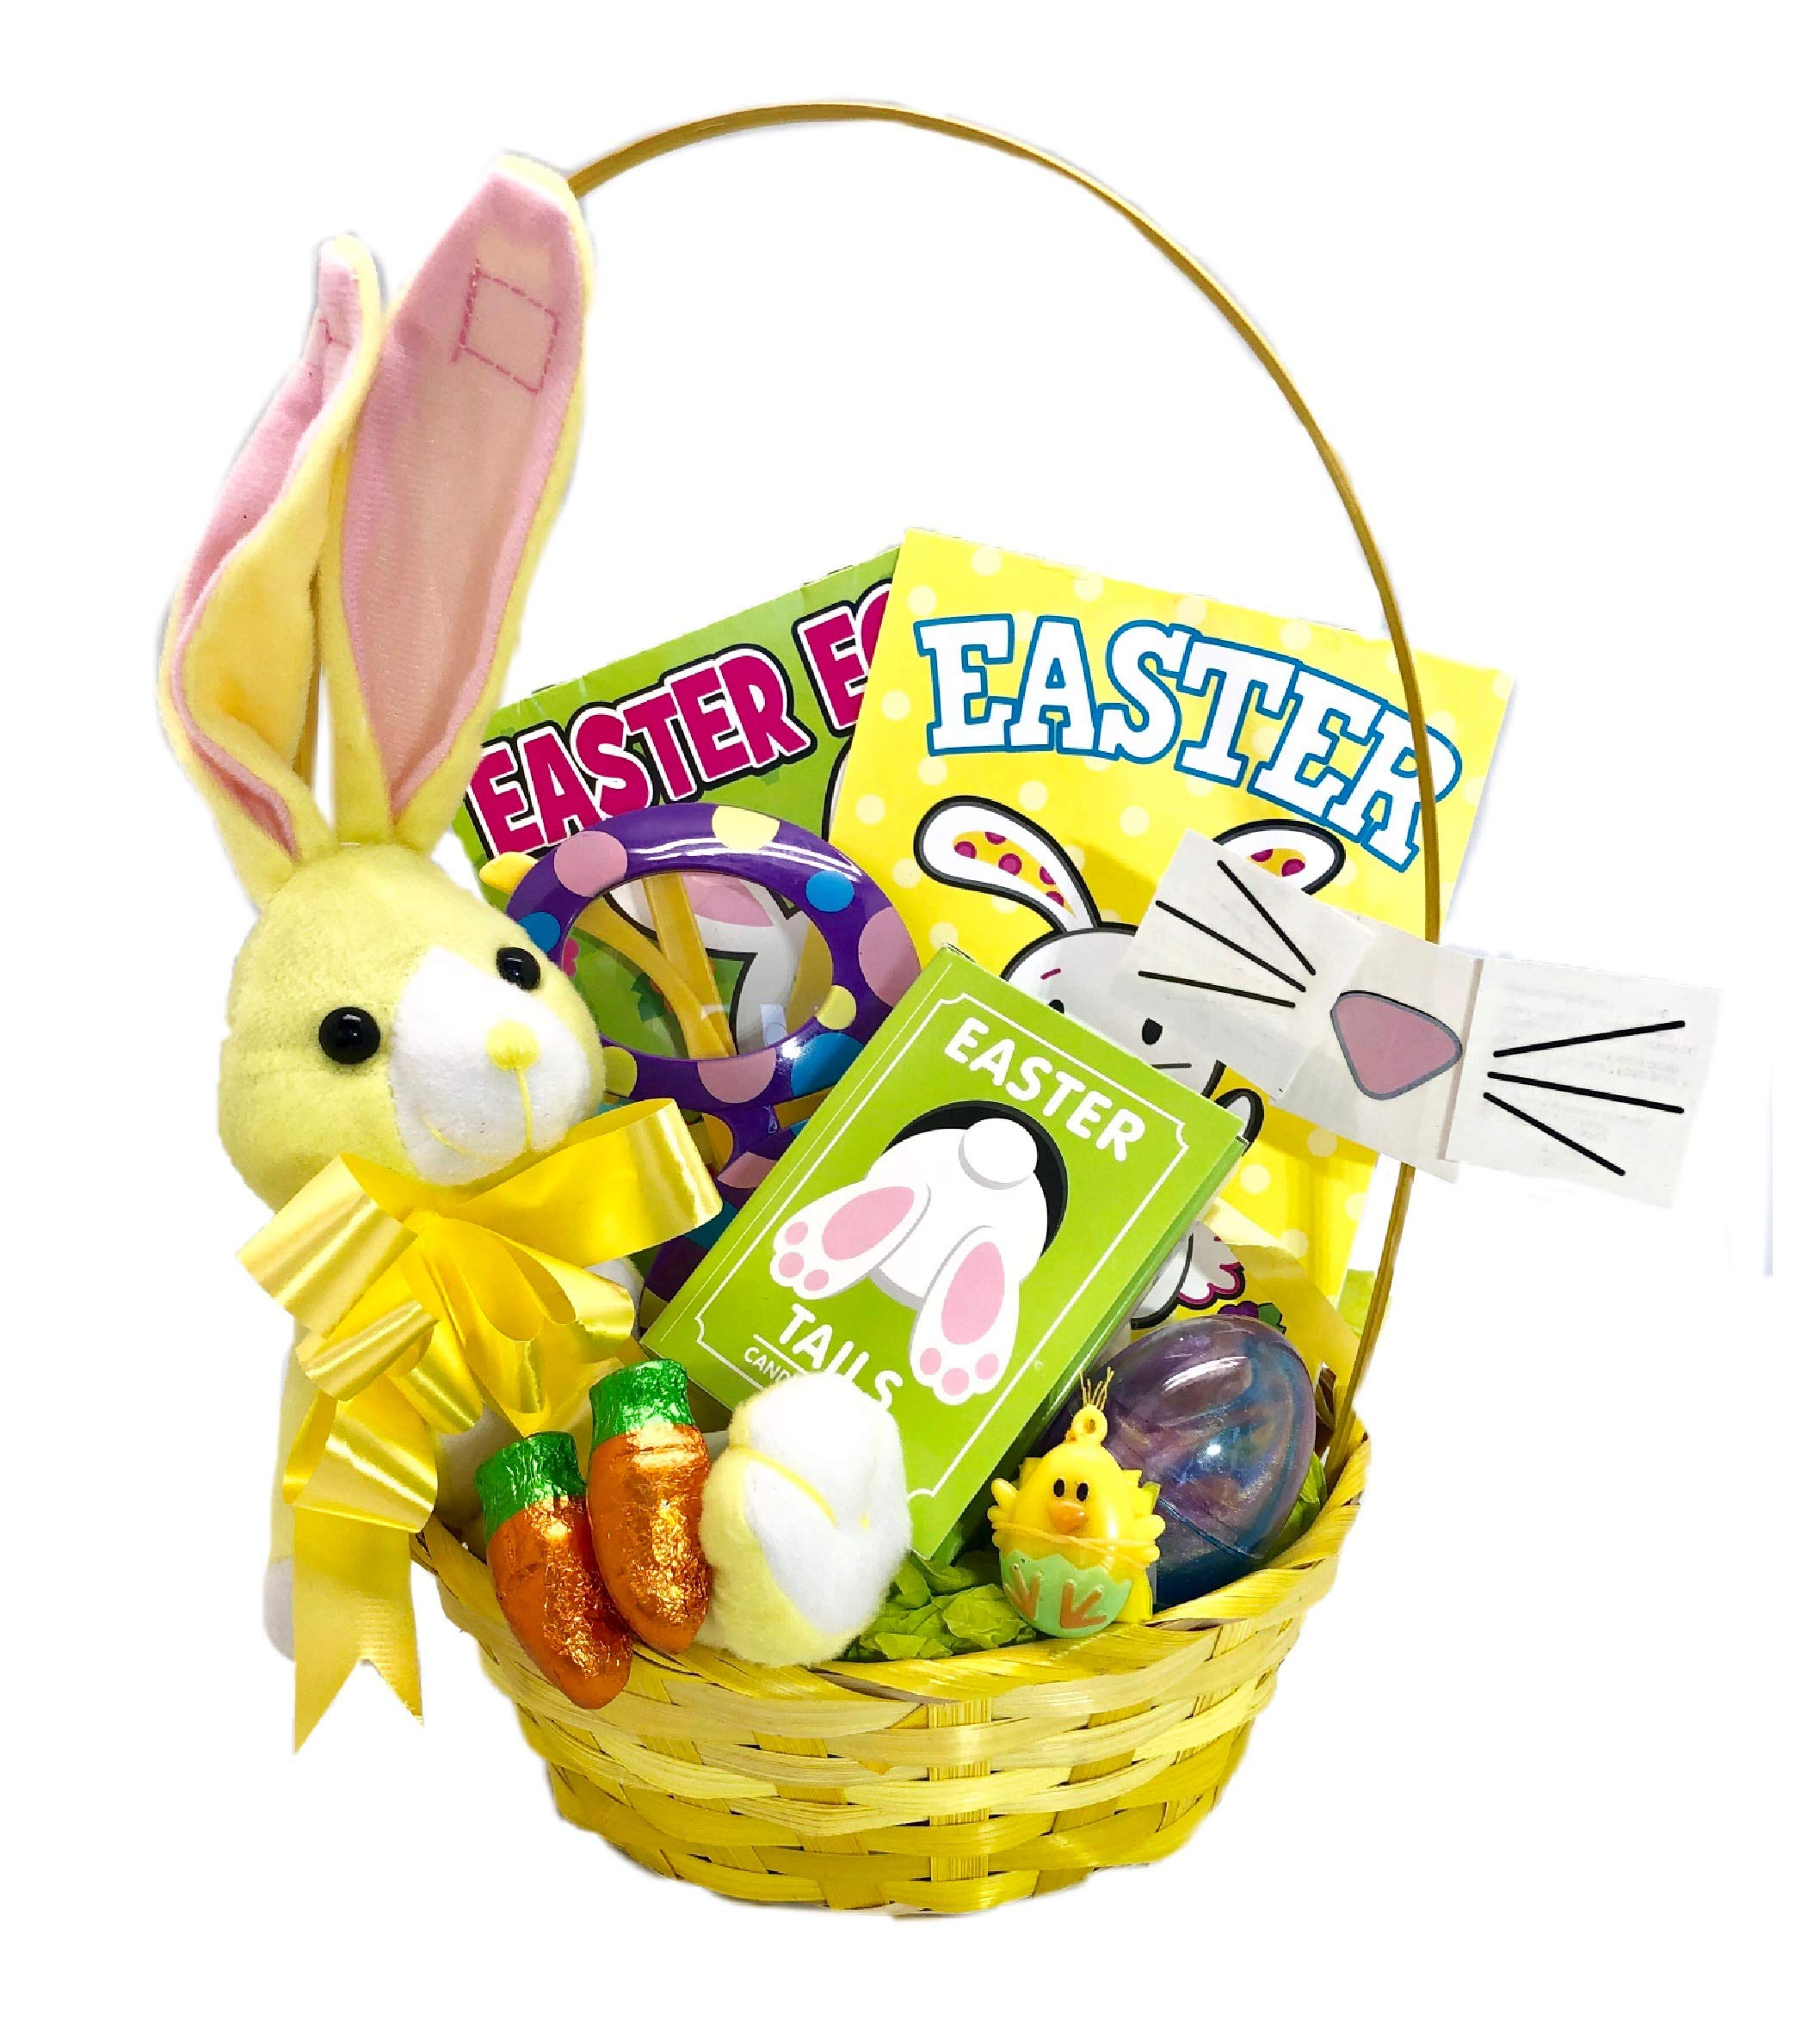 J Bar Easter Baskets for Kids Filled with Easter Basket Stuffers - Easter Baskets for Girls - Easter Baskets for Boys - Quality Candy